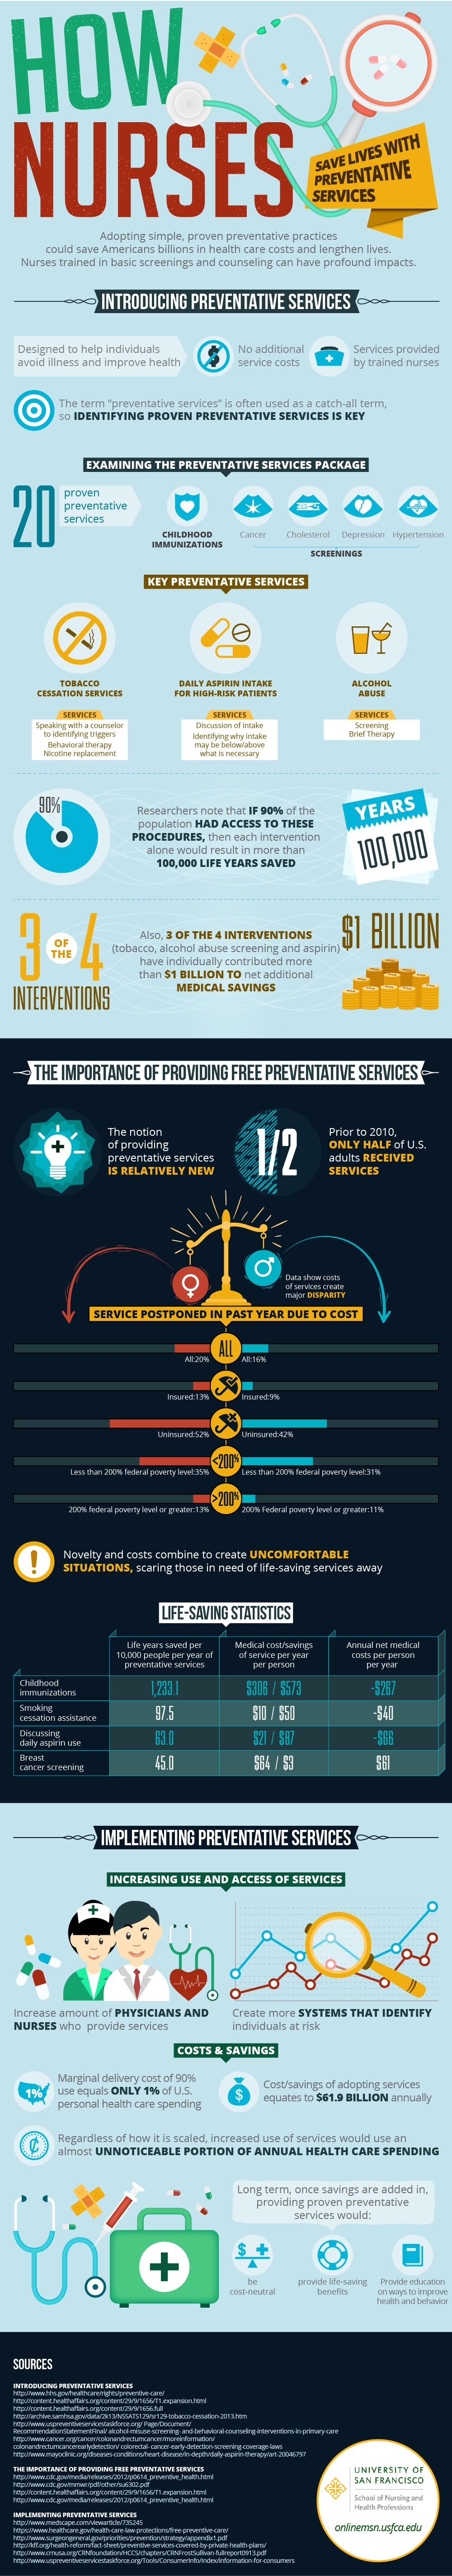 How Nurses Save Lives With Preventative Services Infographic